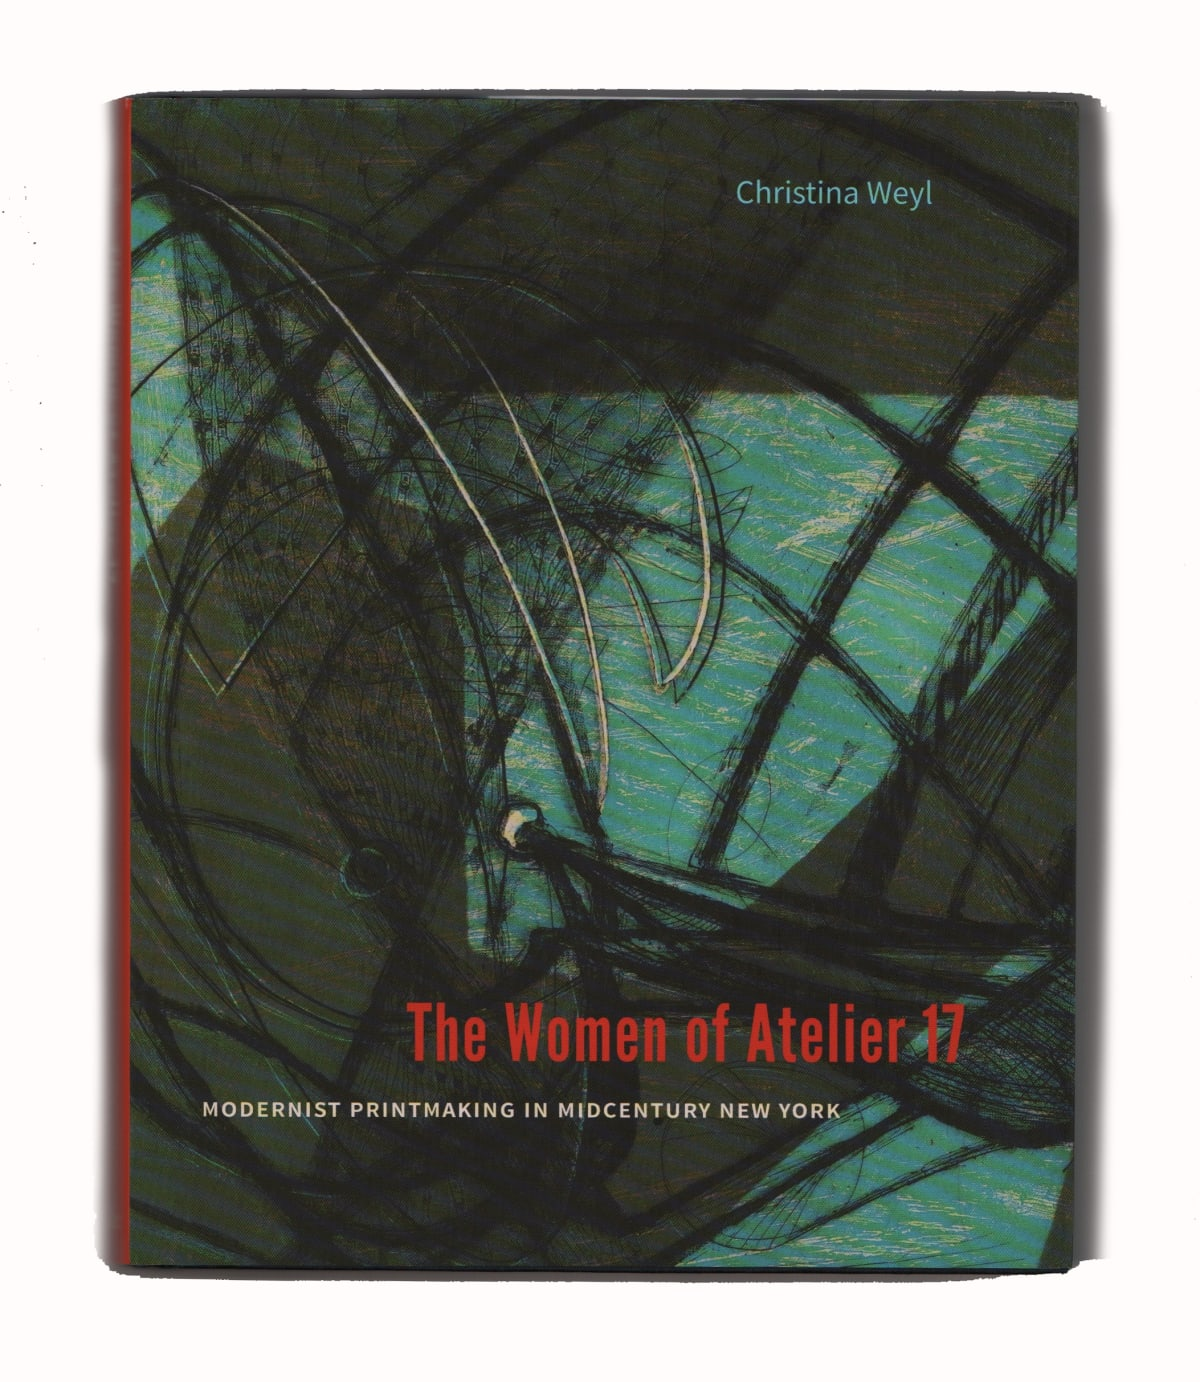 The Women of Atelier 17